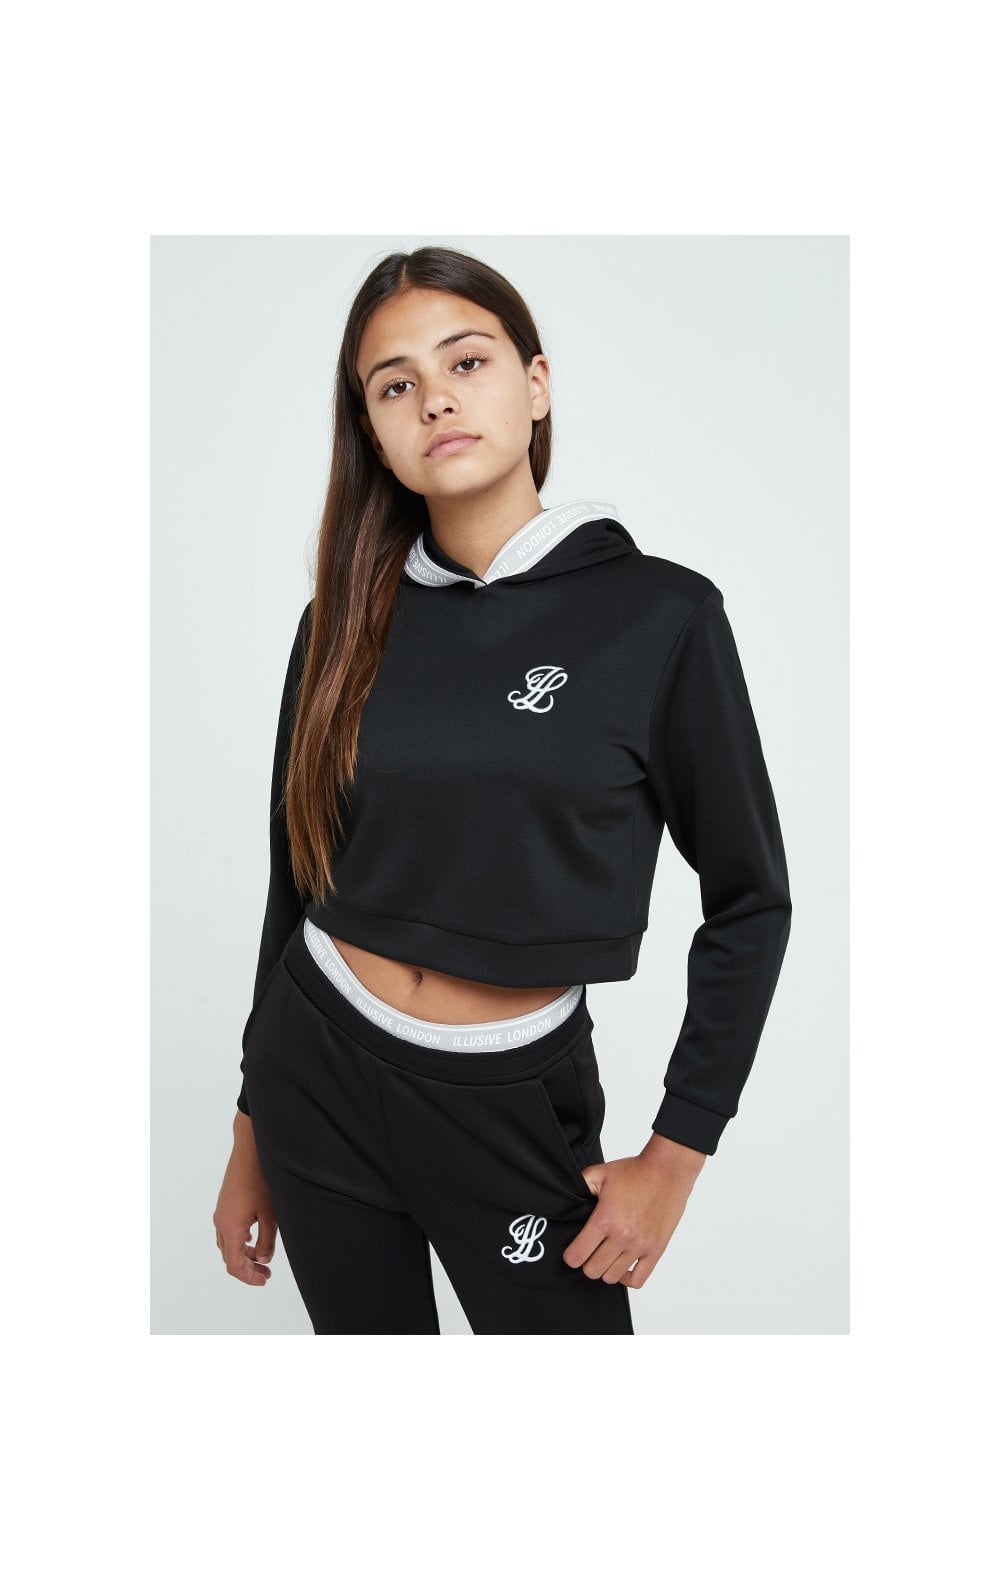 Illusive London Tape Track Top - Black